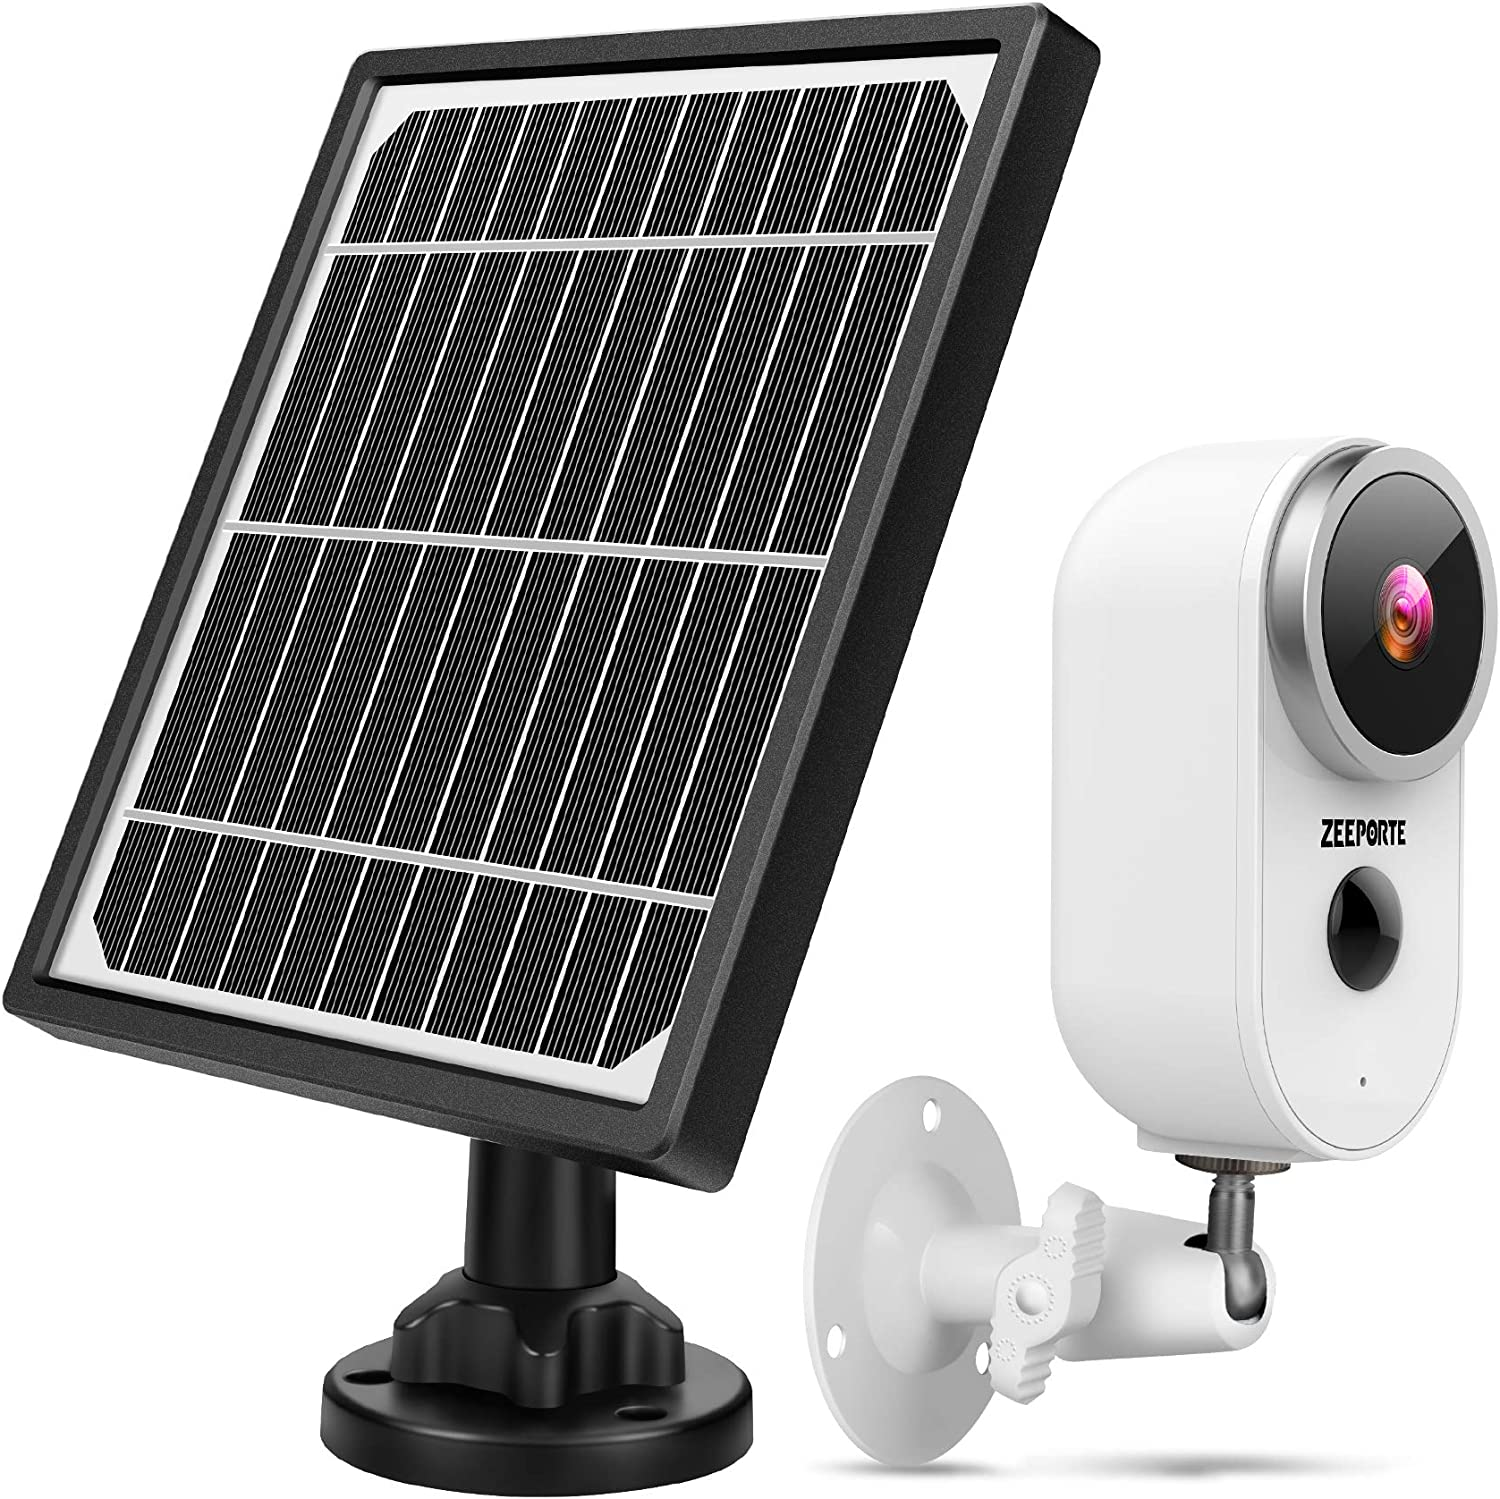 Outdoor Security Camera System Wireless, 1080P Solar Powered Home Security Camera System with Rechargeable Battery, Waterproof, Motion Detection, 2-Way Audio, Night Vision, SD Storage and Solar Panel